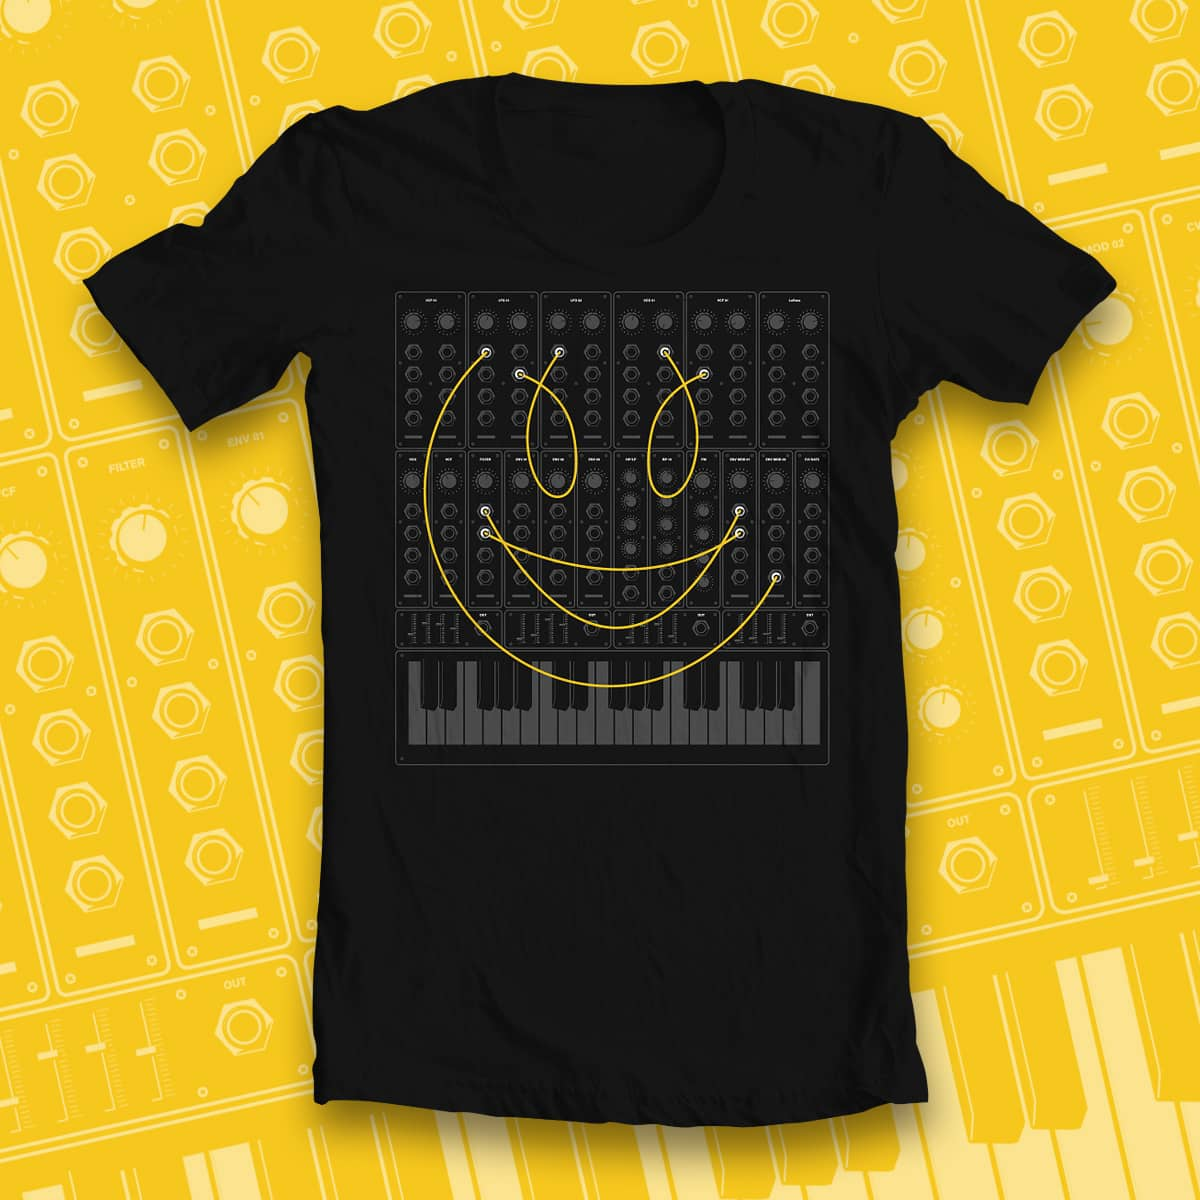 TheHappyMaker by euphospug on Threadless